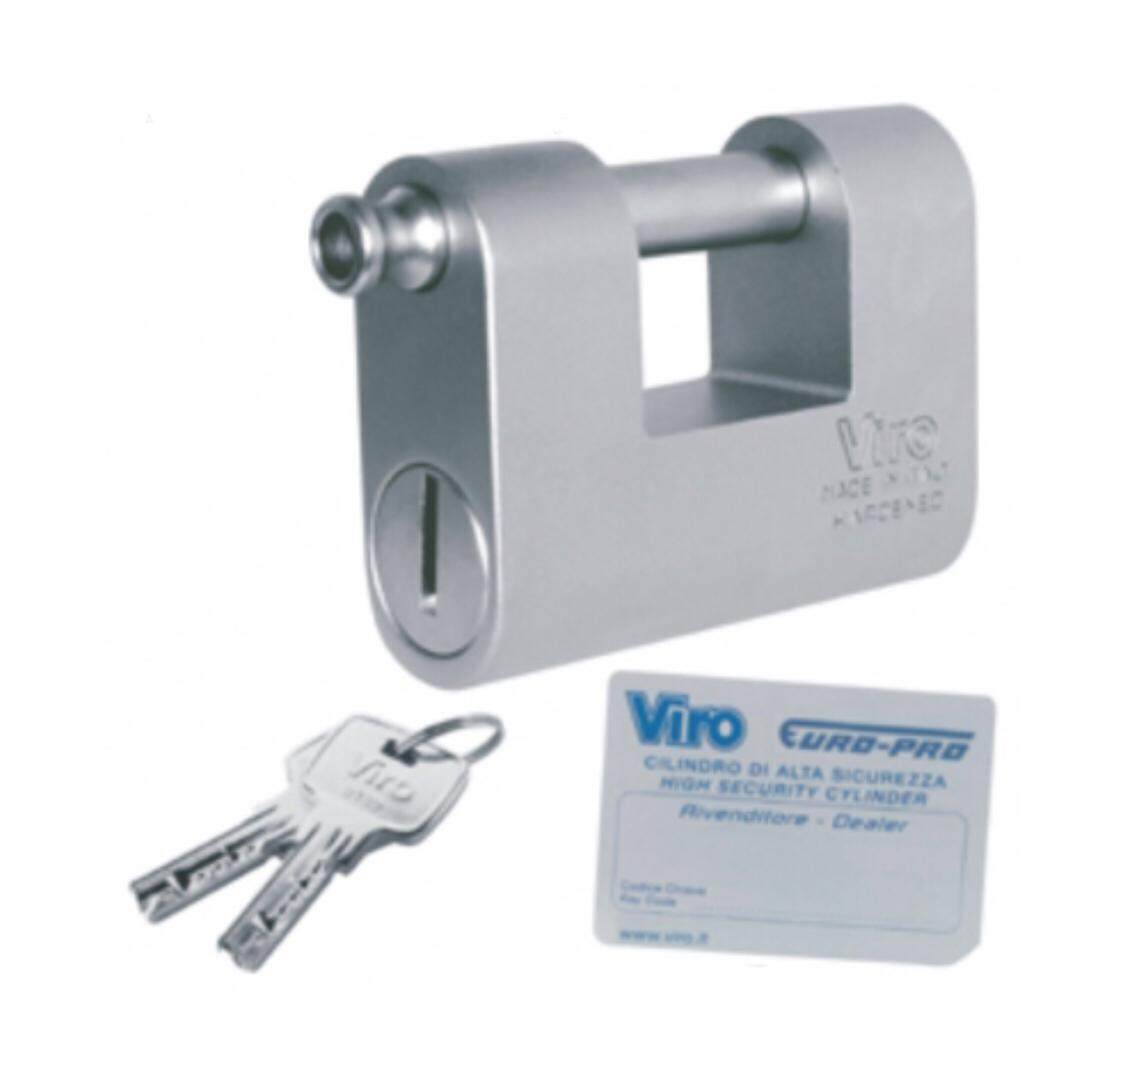 VIRO Euromonolith 4154 Padlock 87mm with Computer Key (Made in Italy)